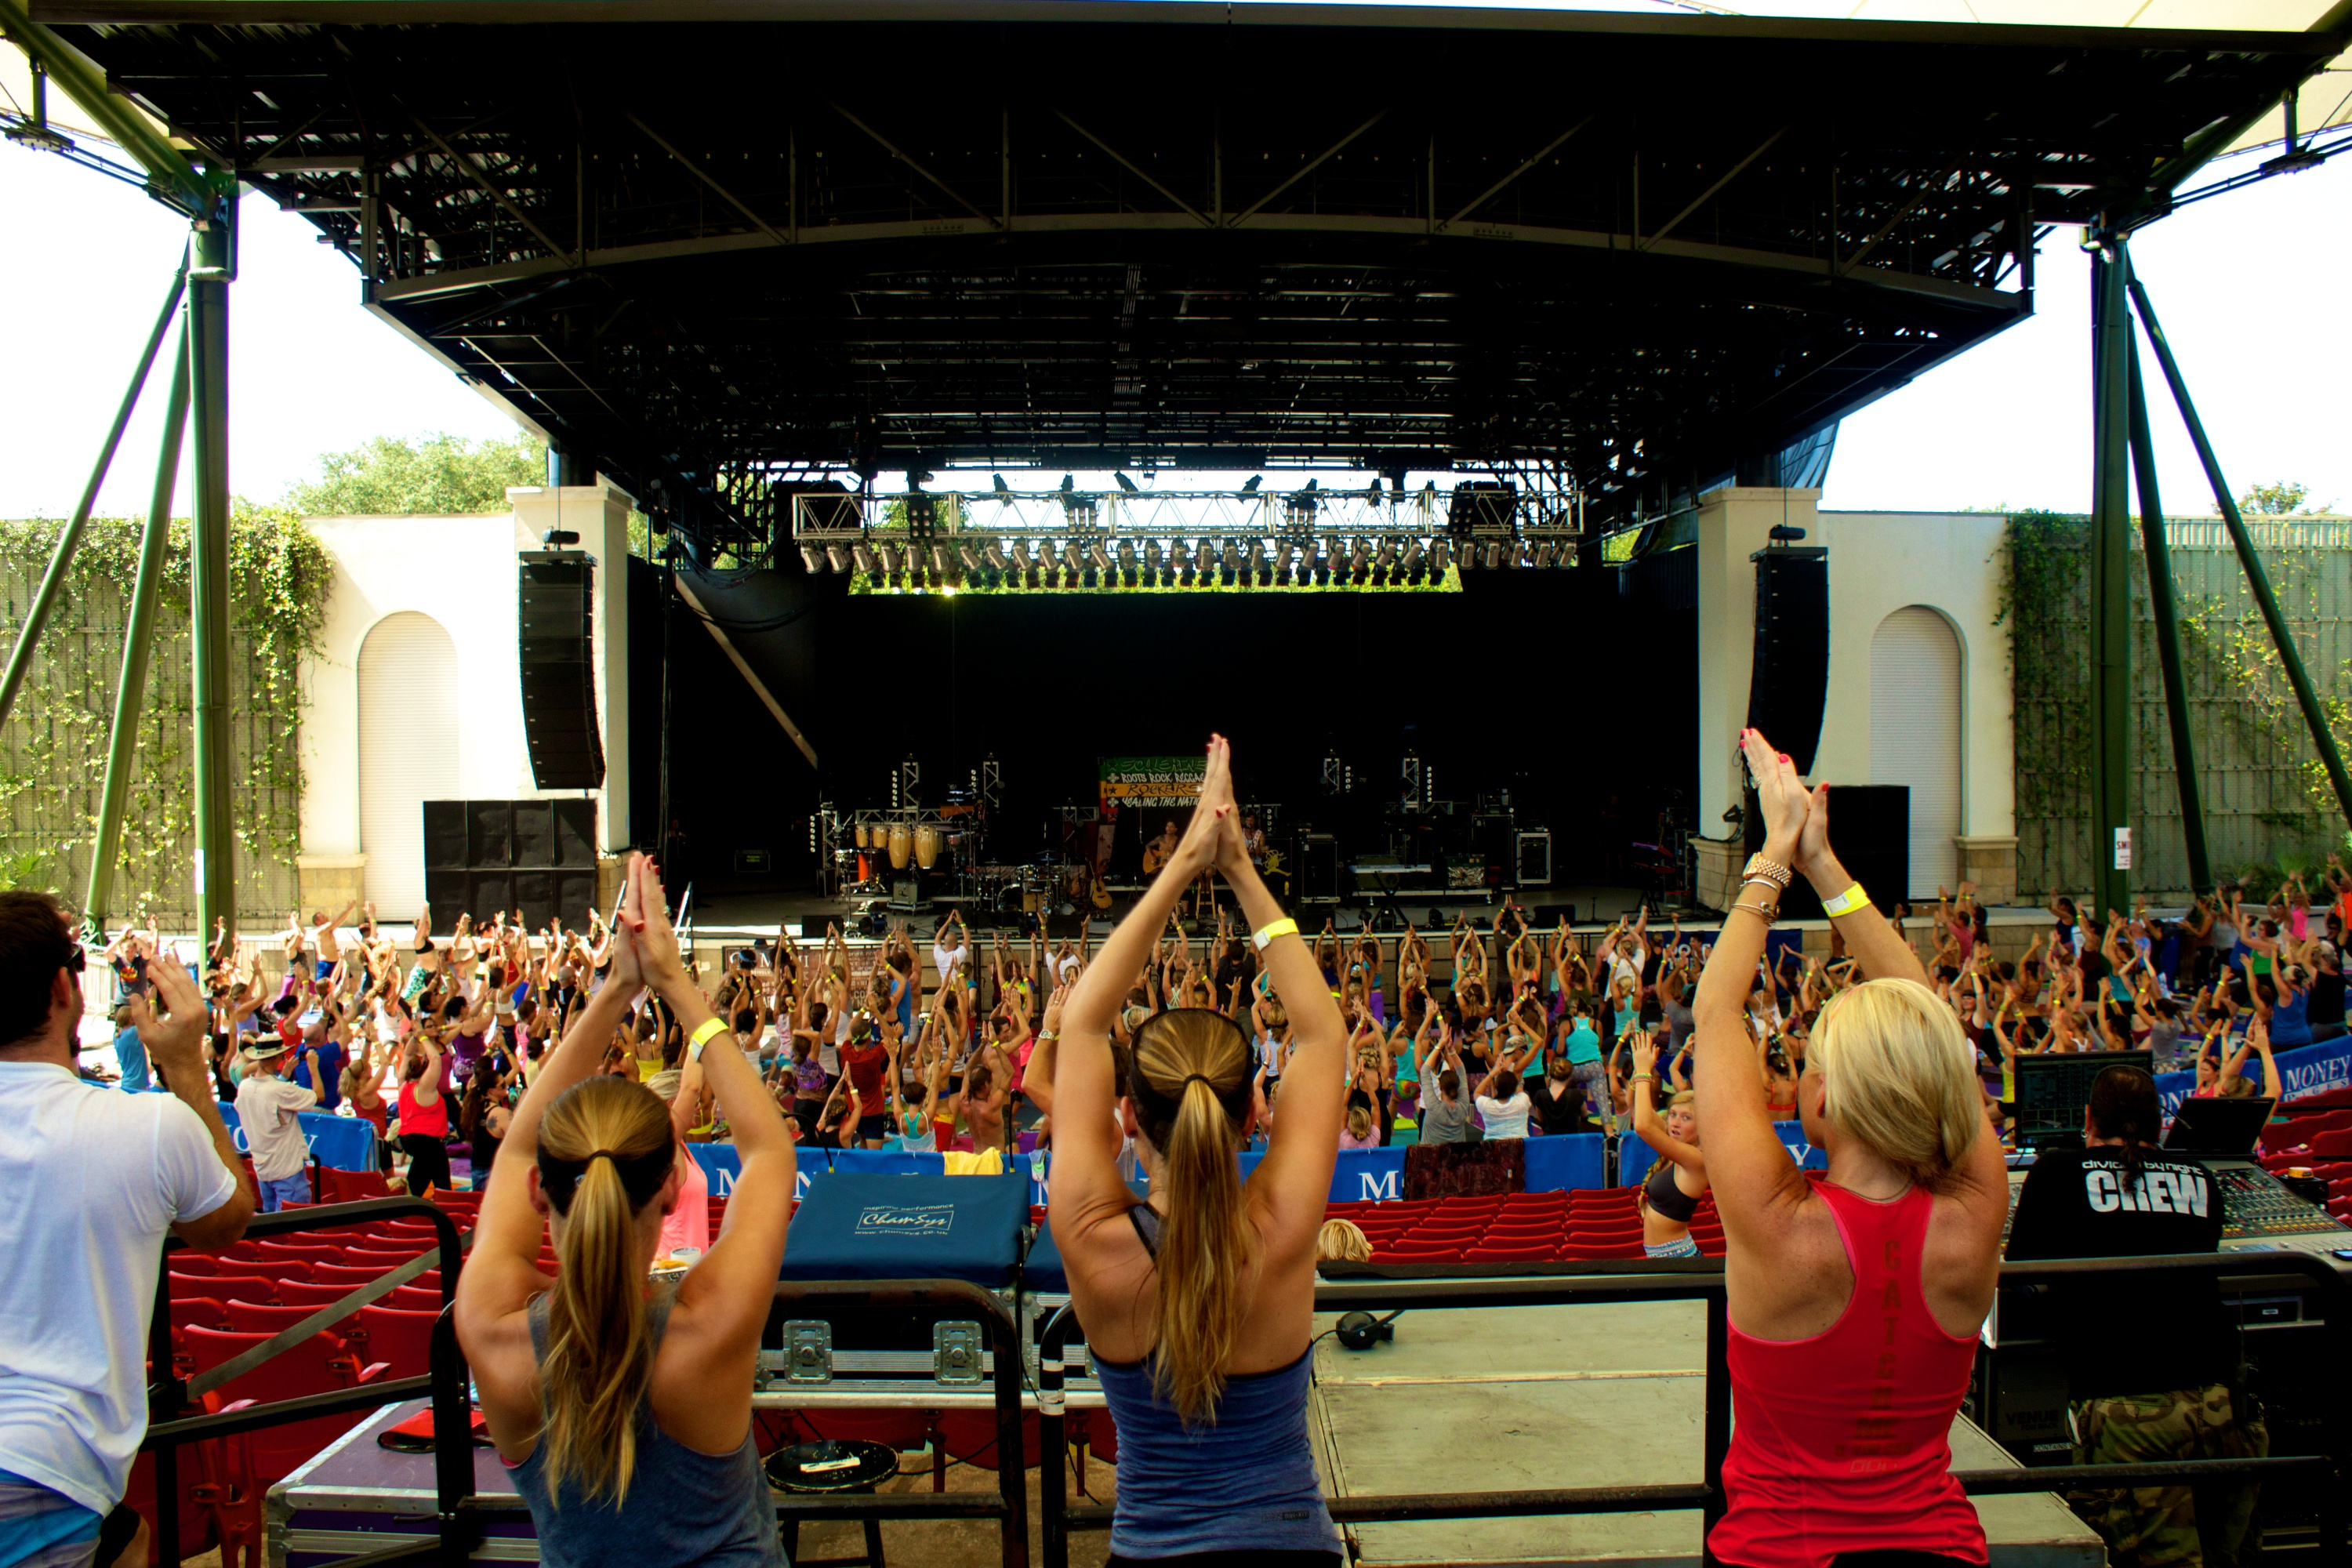 Participants do yoga at the St. Augustine Amphitheatre as part of the Soulshine Tour on Wednesday, July 30. Photos by BRYAN EDWARD, www.facebook.com/BryanEdwardPhotography